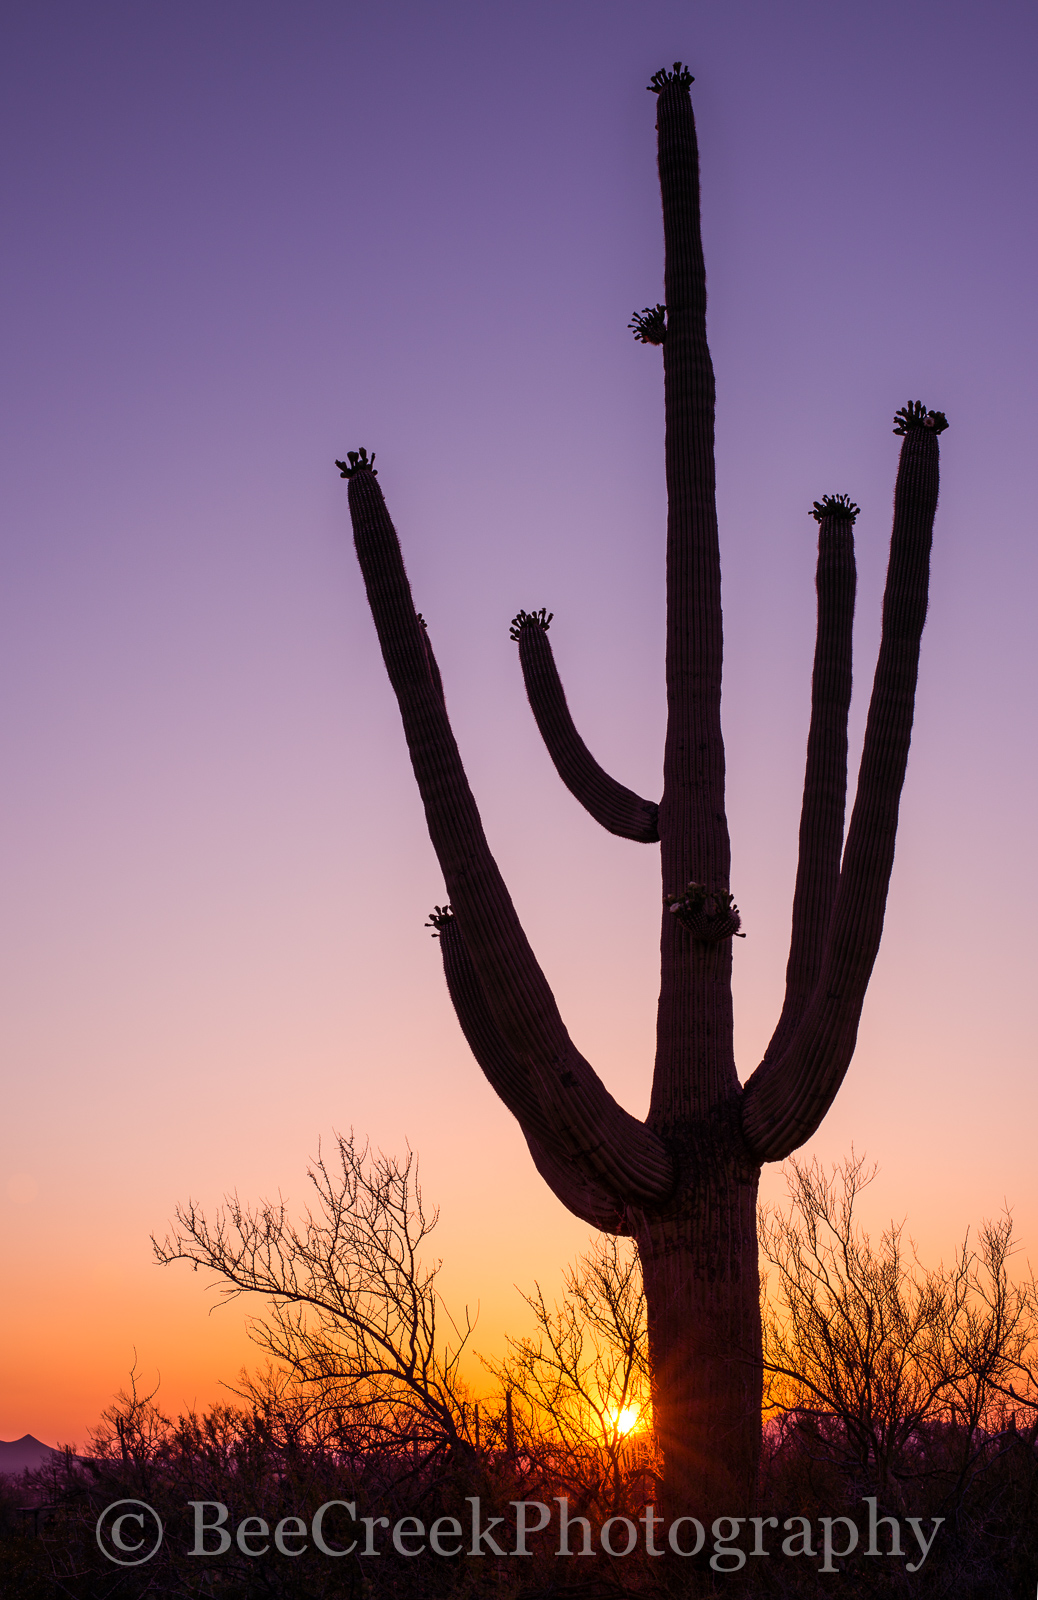 tucson saguaro cactus, sunset, landscape, landscapes, tucson cati, tucson flora, desert, images of tucson, photographs of tucson, tucson, tucson skyline, tucson, arizona photographs, saguaros, saguaro, photo